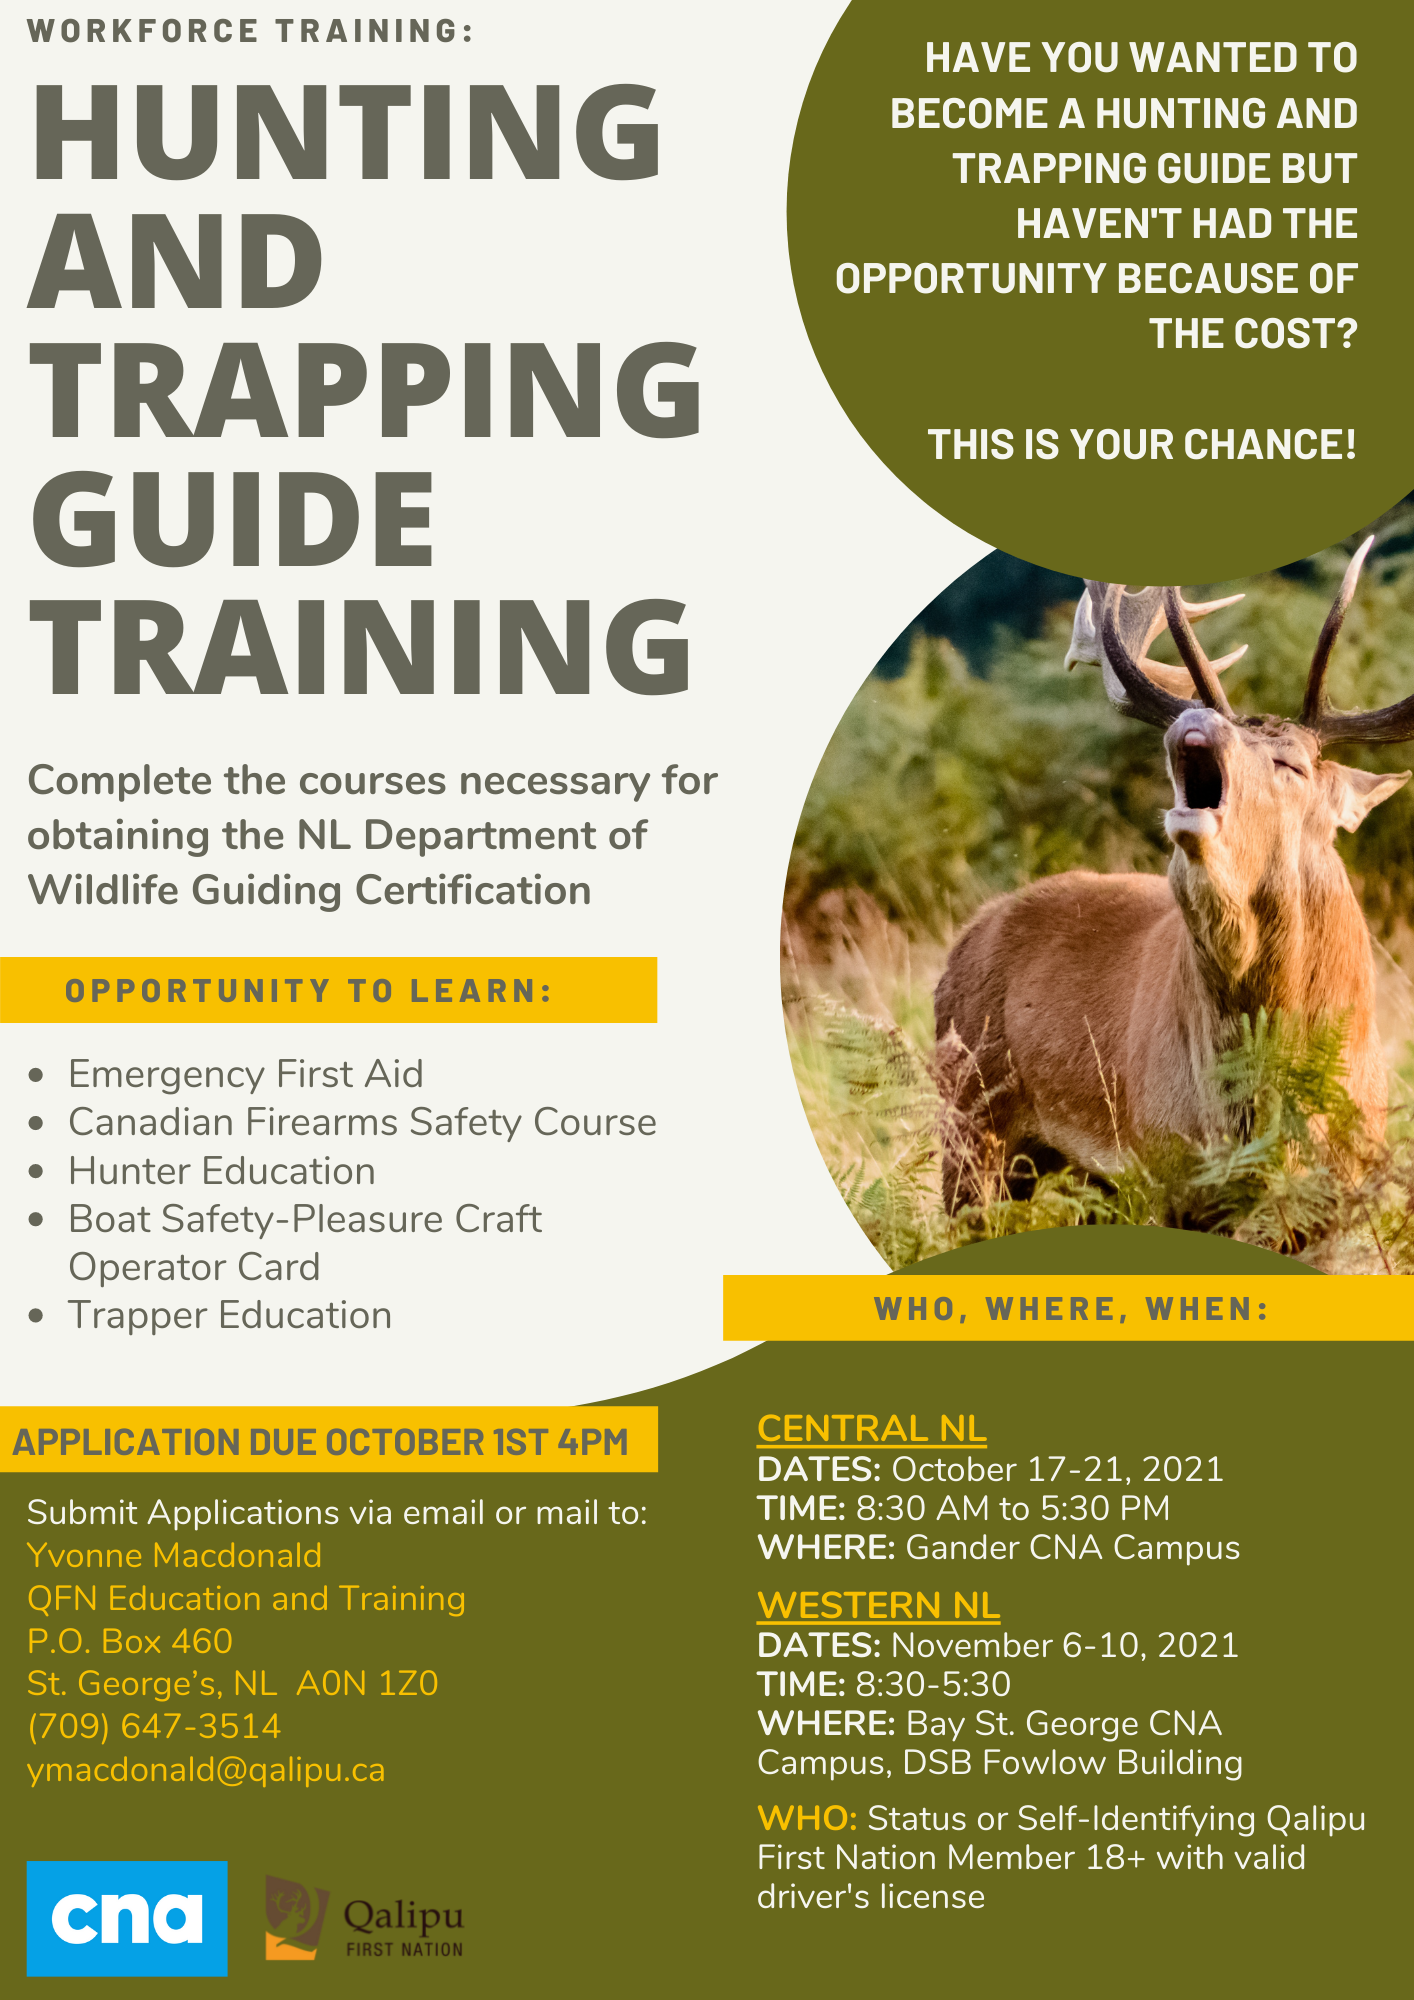 OFFICIAL_HuntingTrappingPoster